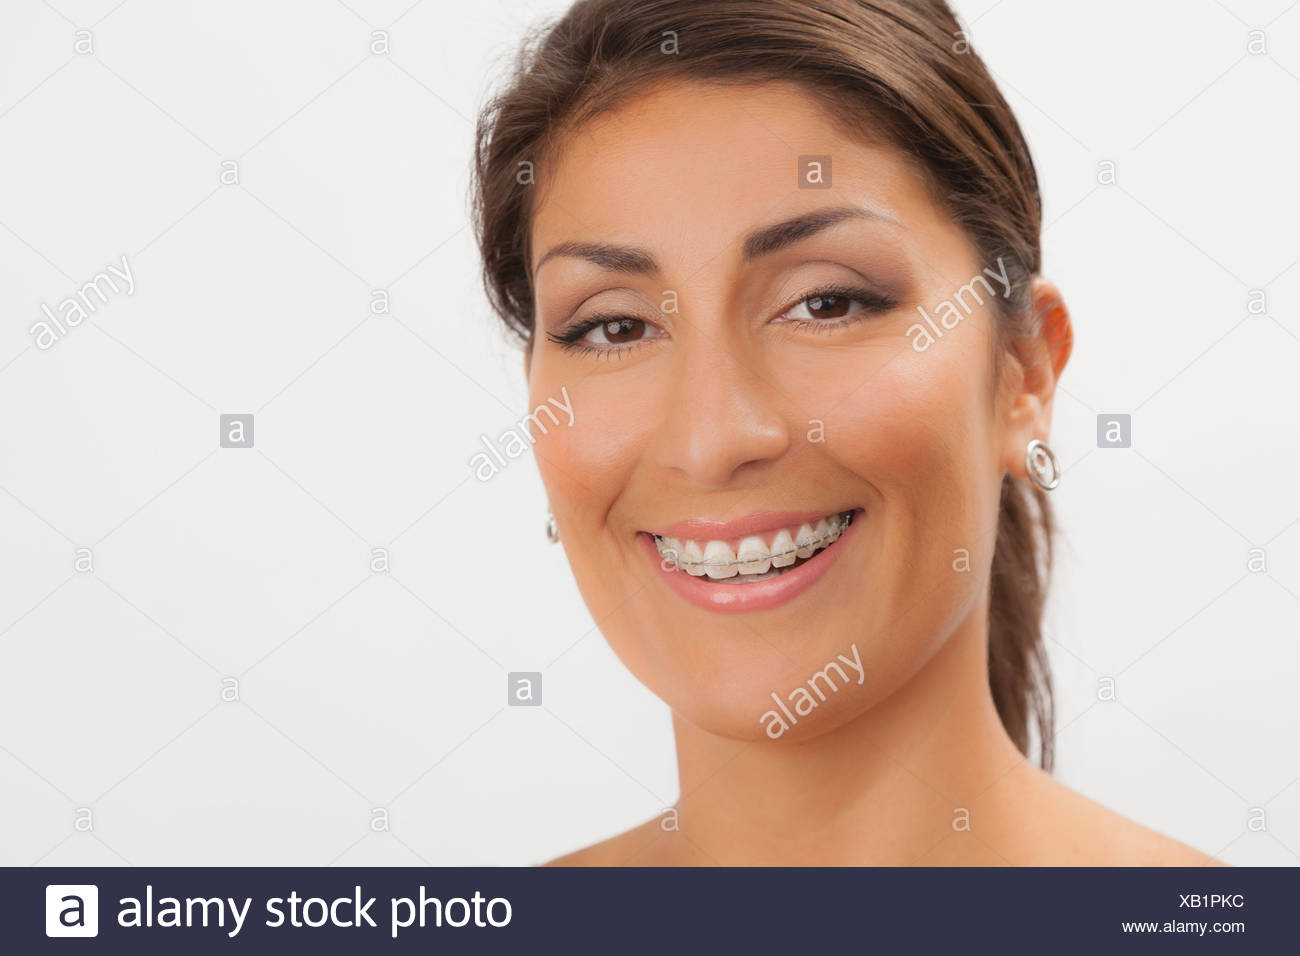 Adult orthodontic appliance or brace stock photo